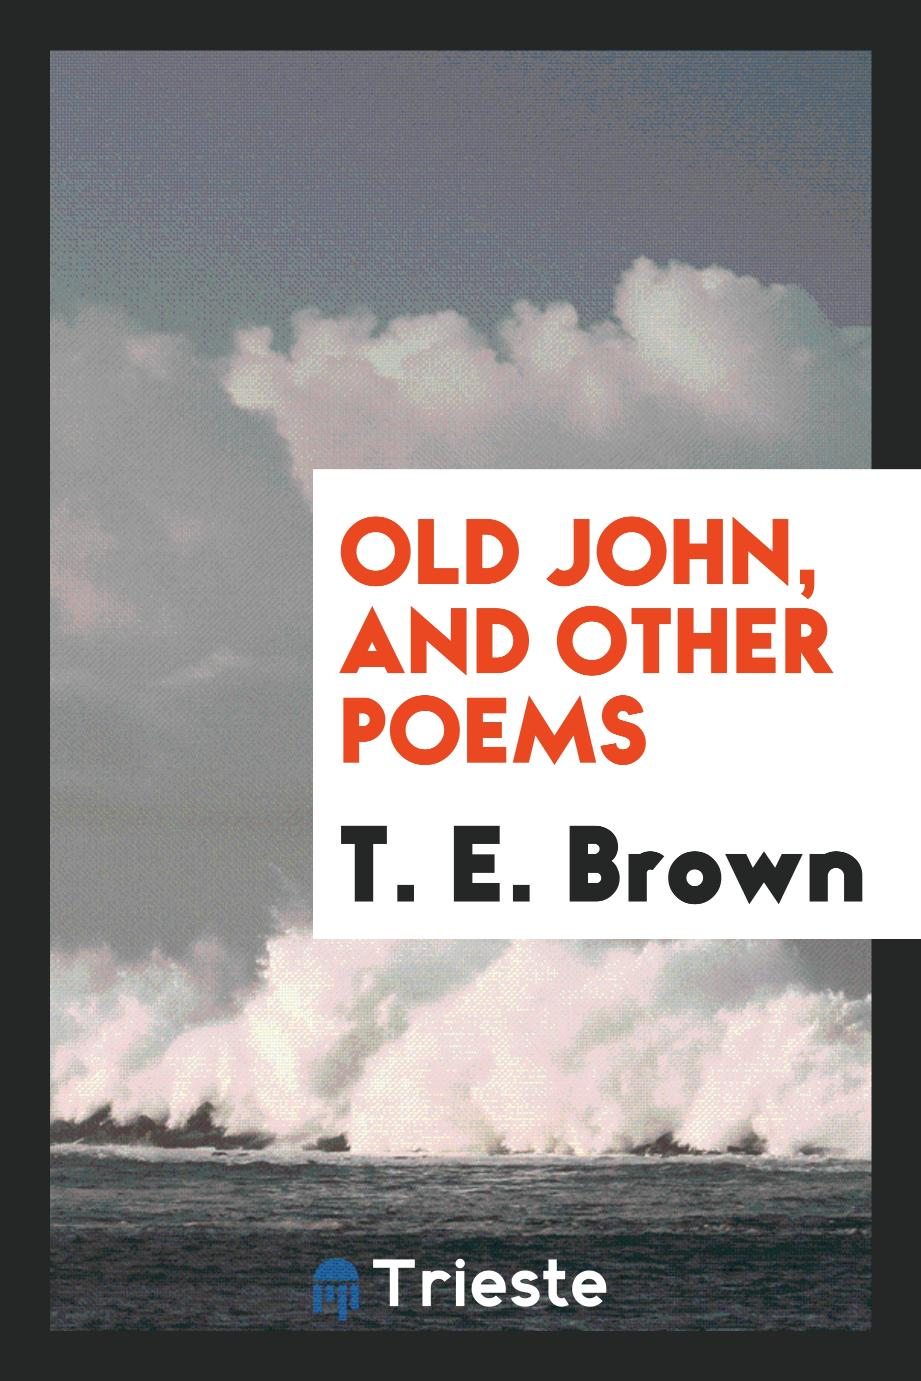 Old John, and other poems